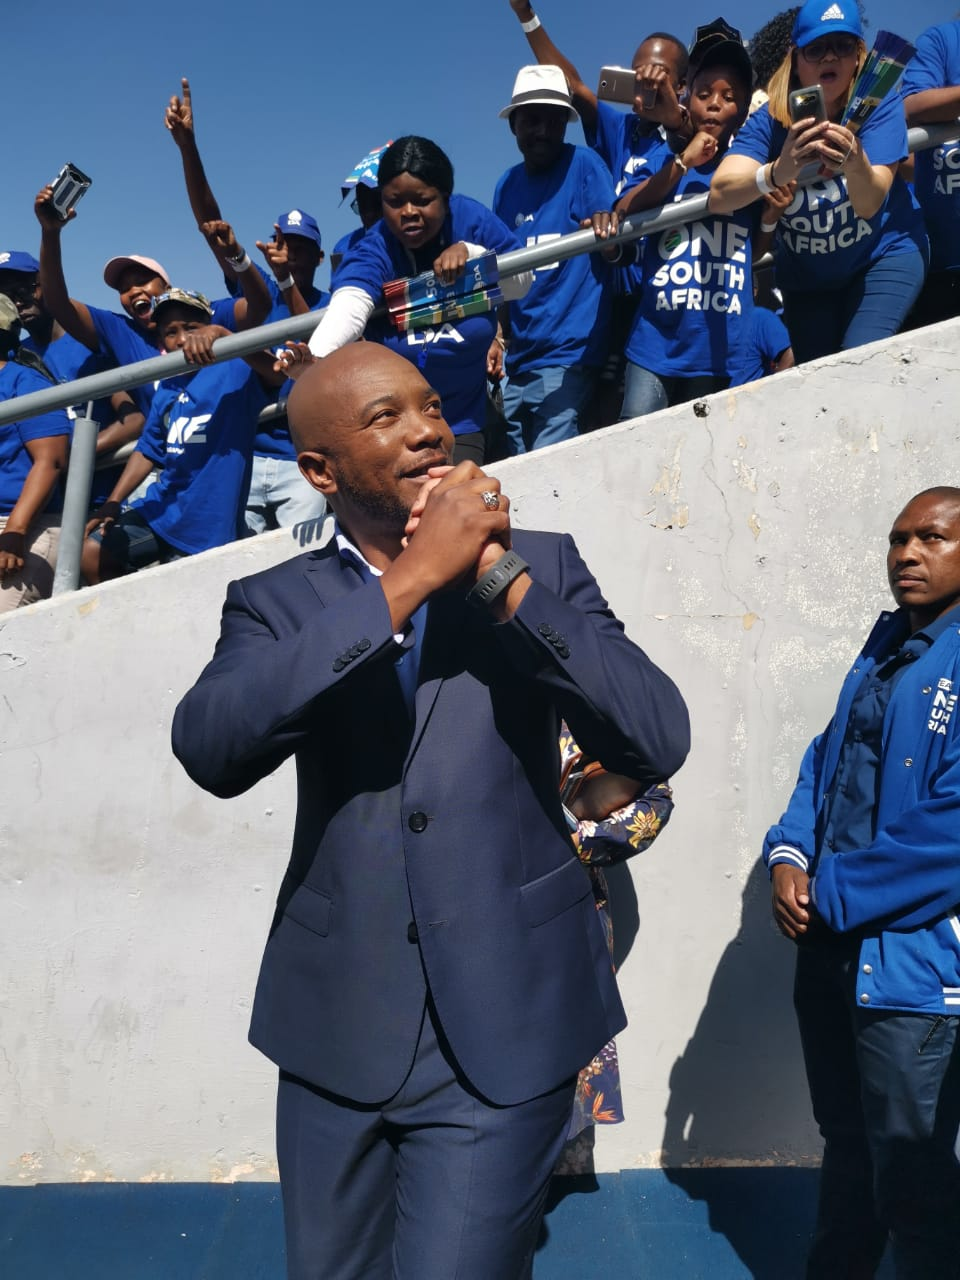 DA, COPE, UDM and ACDP working to ensure free and fair elections